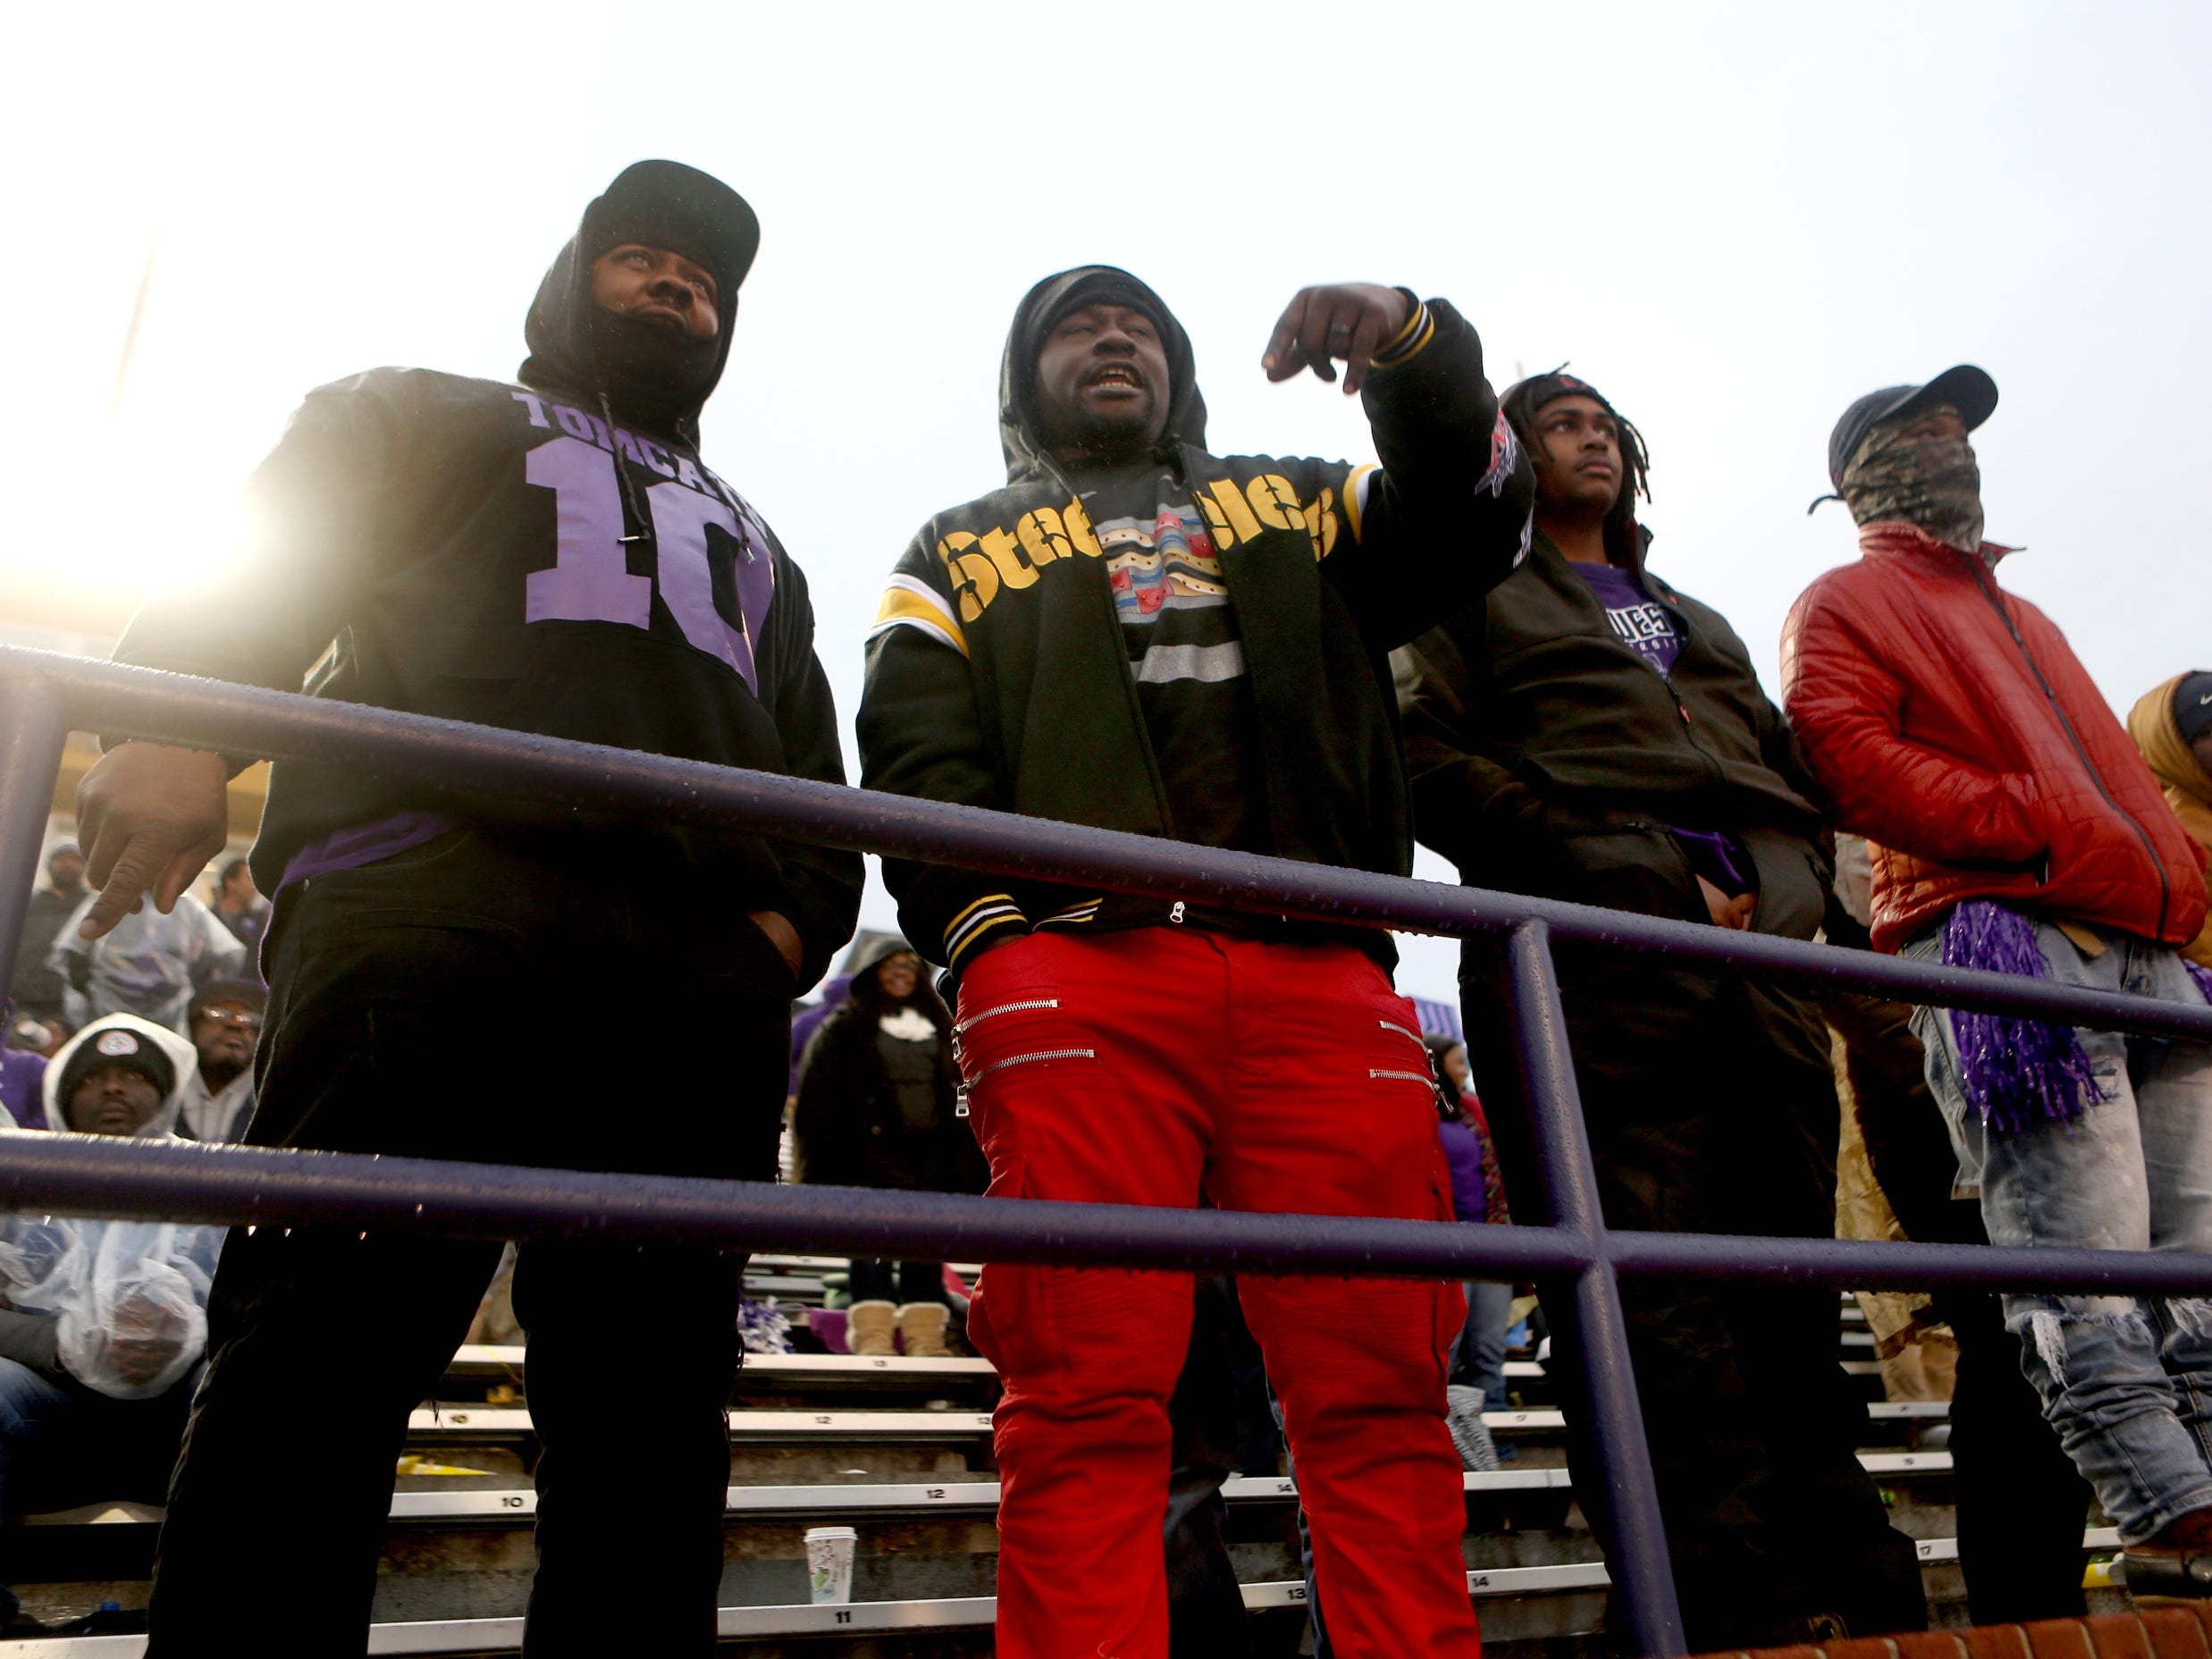 Haywood fans watch the Class 4A BlueCross Bowl state championship game between Haywood and Greeneville Thursday, Nov. 29, 2018, at Tennessee Tech's Tucker Stadium in Cookeville, Tenn.